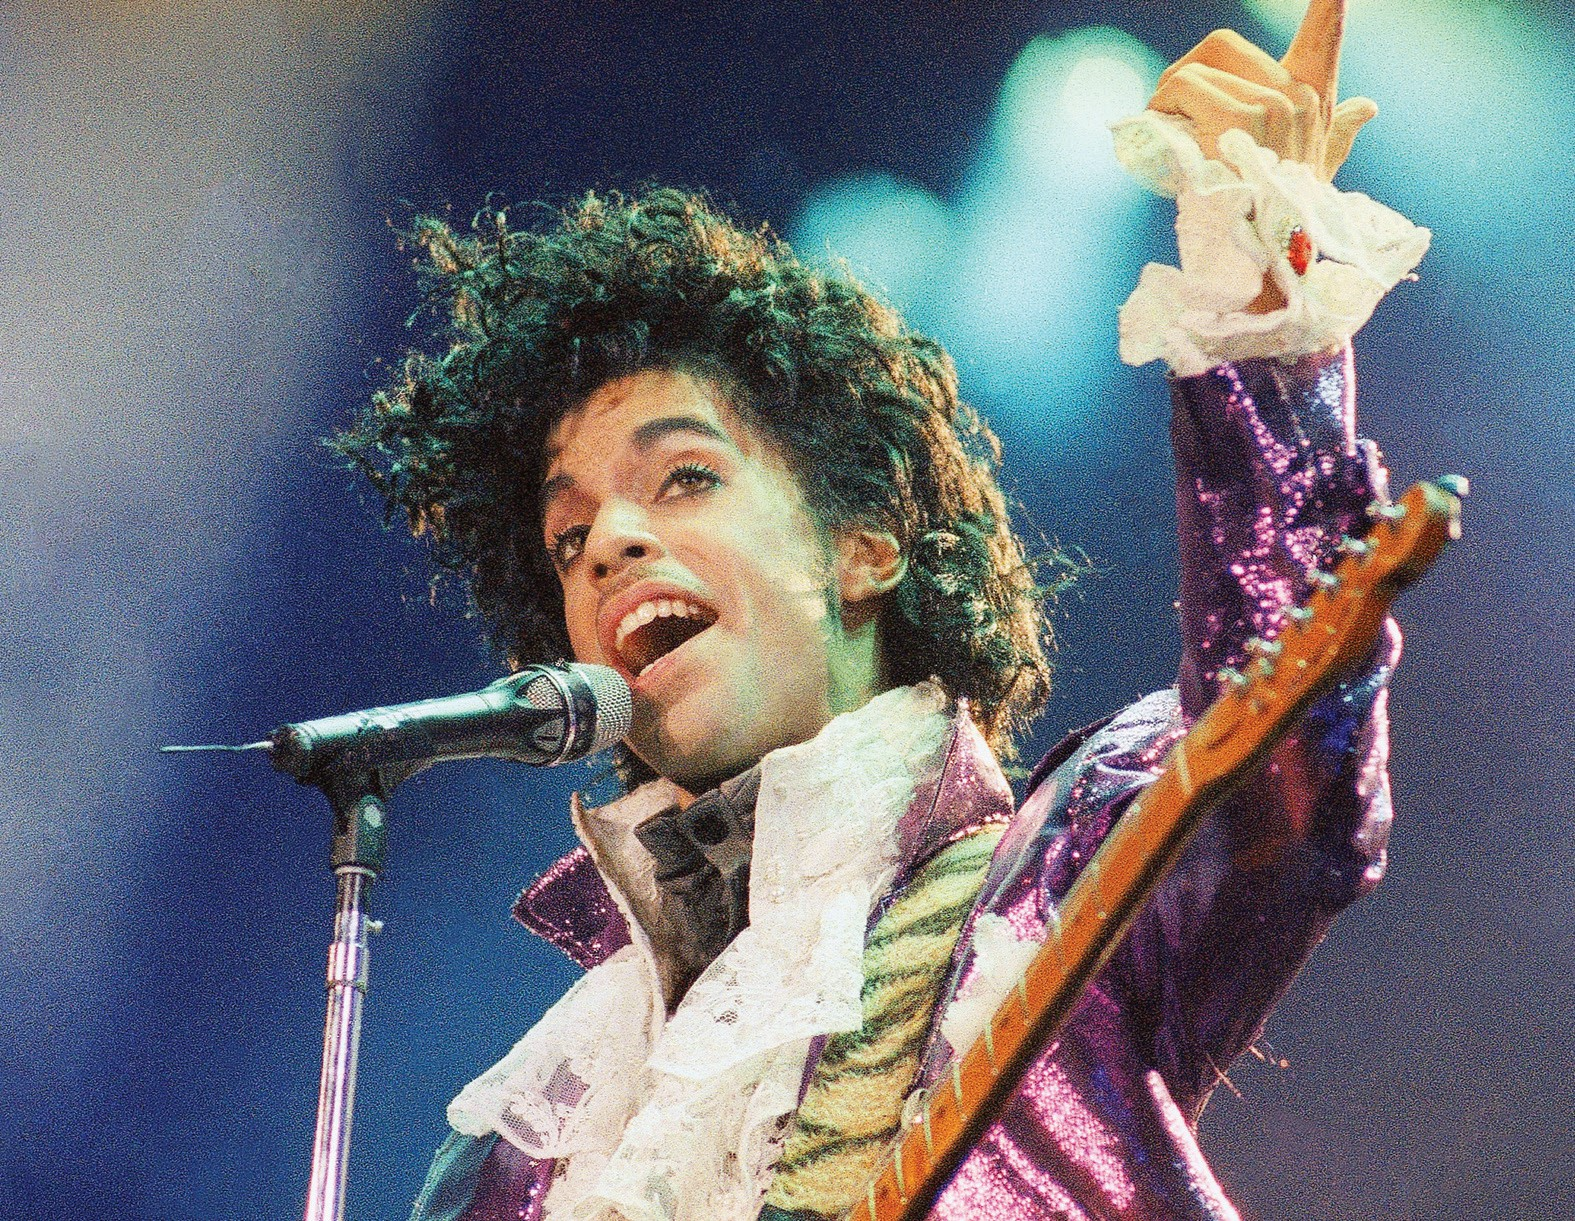 In this Feb. 18, 1985 file photo, Prince performs at the Forum in Inglewood, Calif.